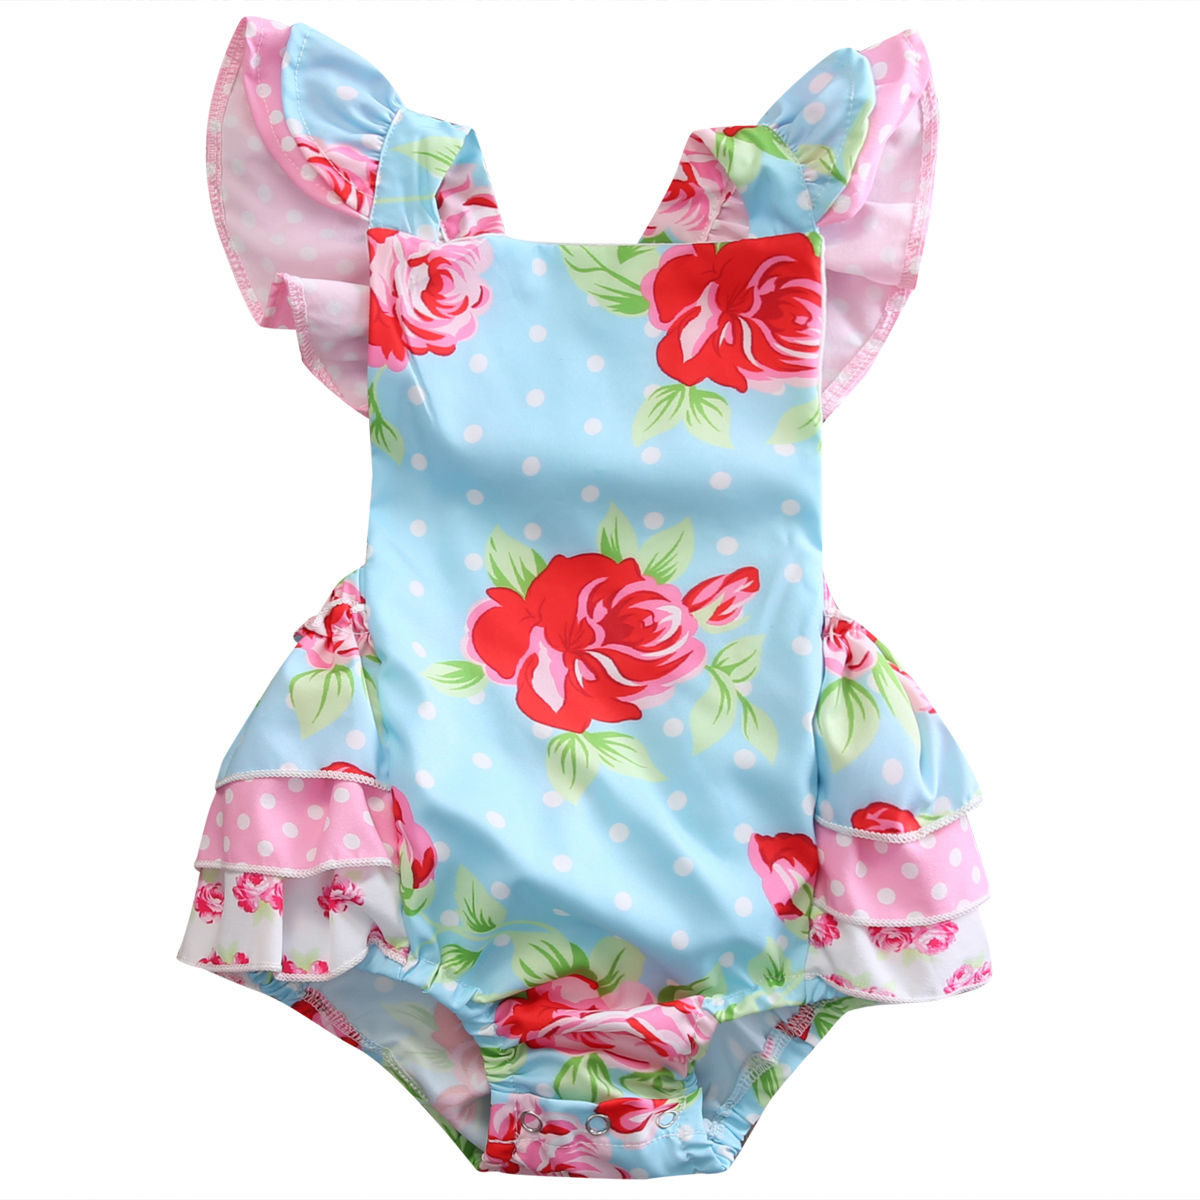 Infant Baby Girls Floral Ruffle Romper Dress Jumper Jumpsuit Sleeveless Newborn Kids Girl Summer Sunsuit Clothes summer newborn infant baby girl romper short sleeve floral romper jumpsuit outfits sunsuit clothes